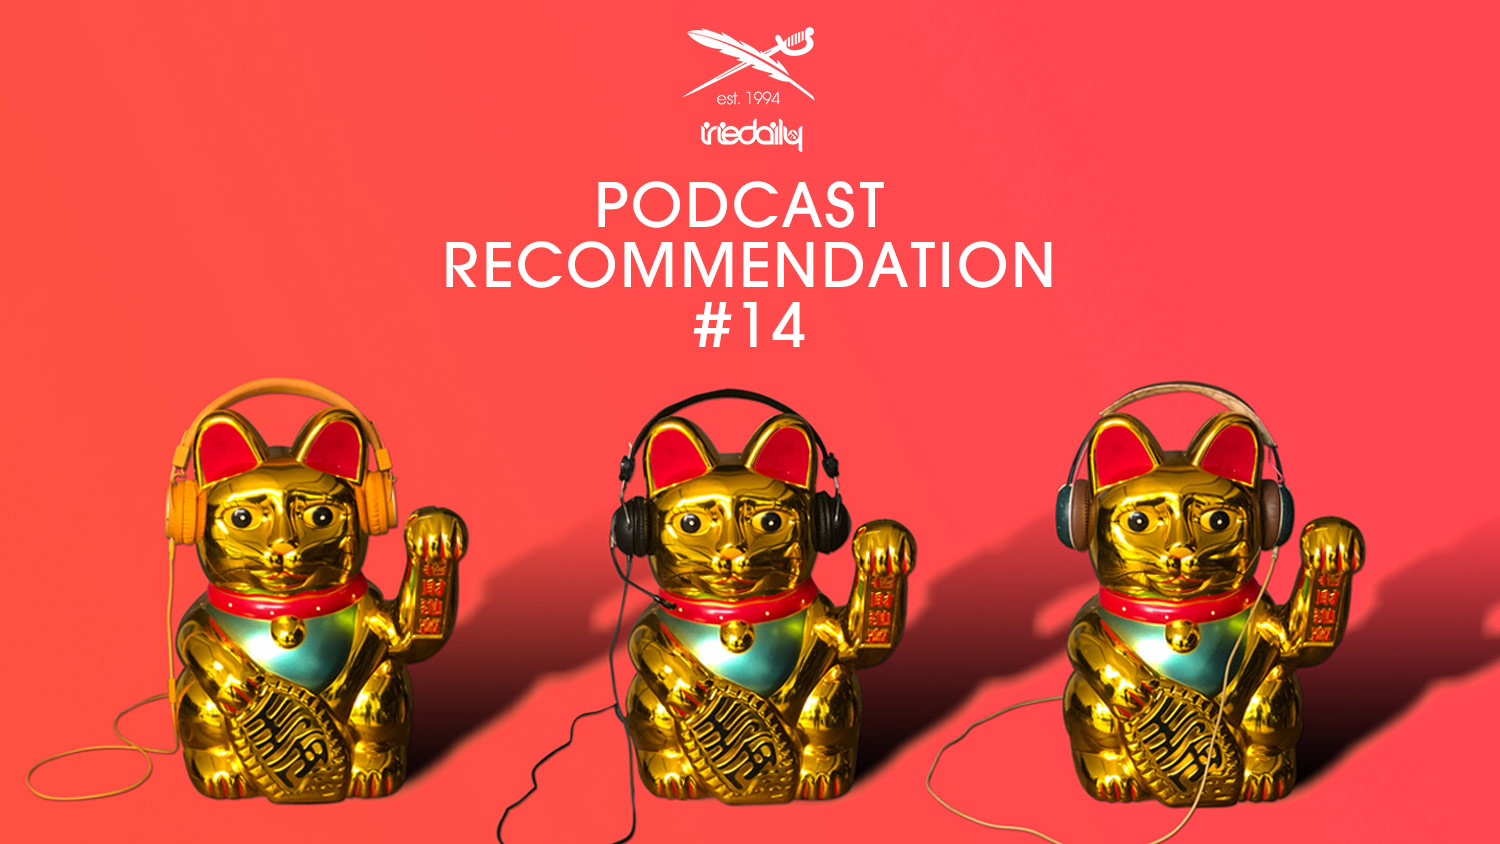 IRIEDAILY Podcast Recommendation #14